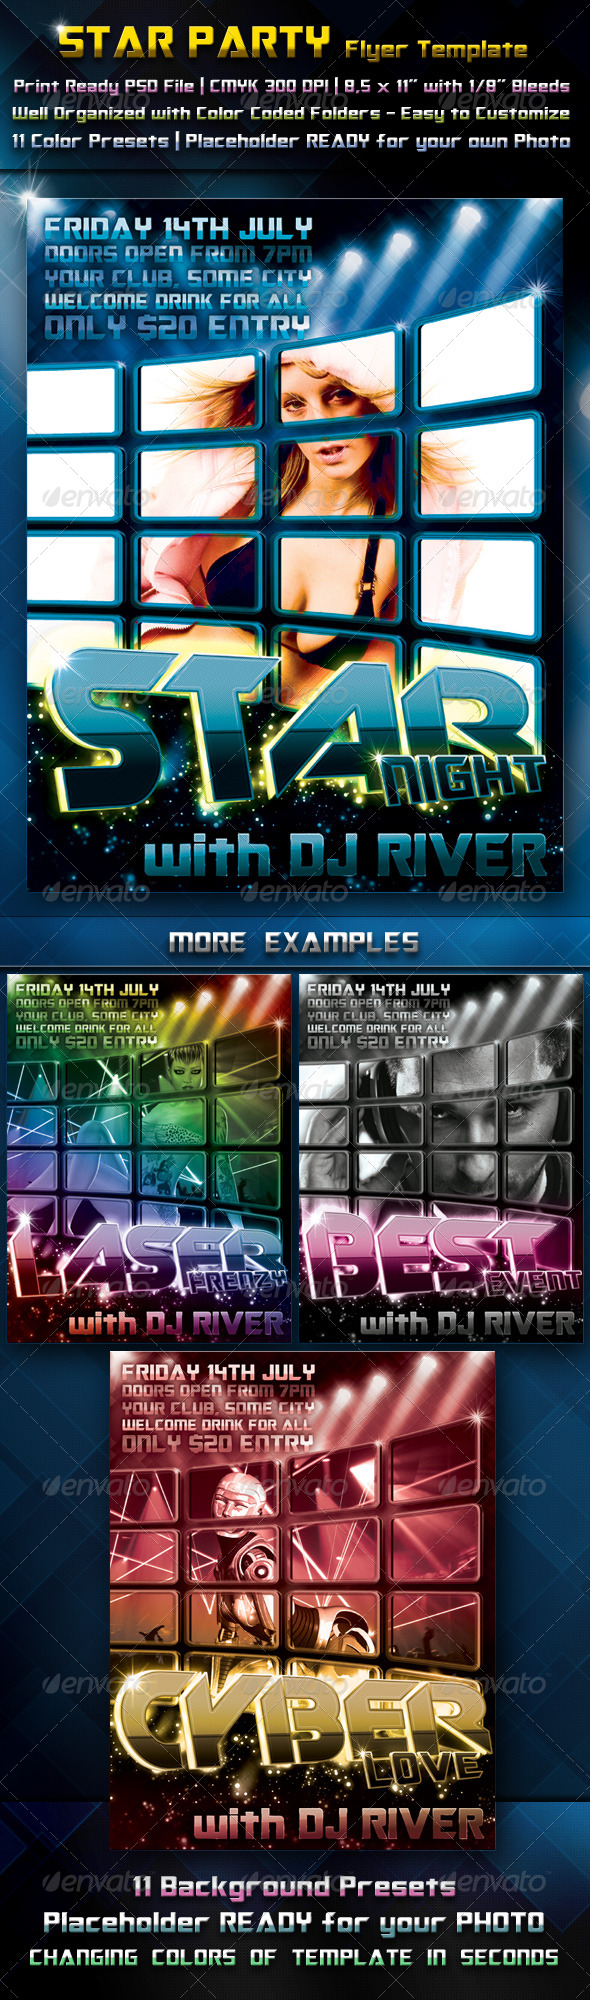 Star Party Flyer Template - Clubs & Parties Events